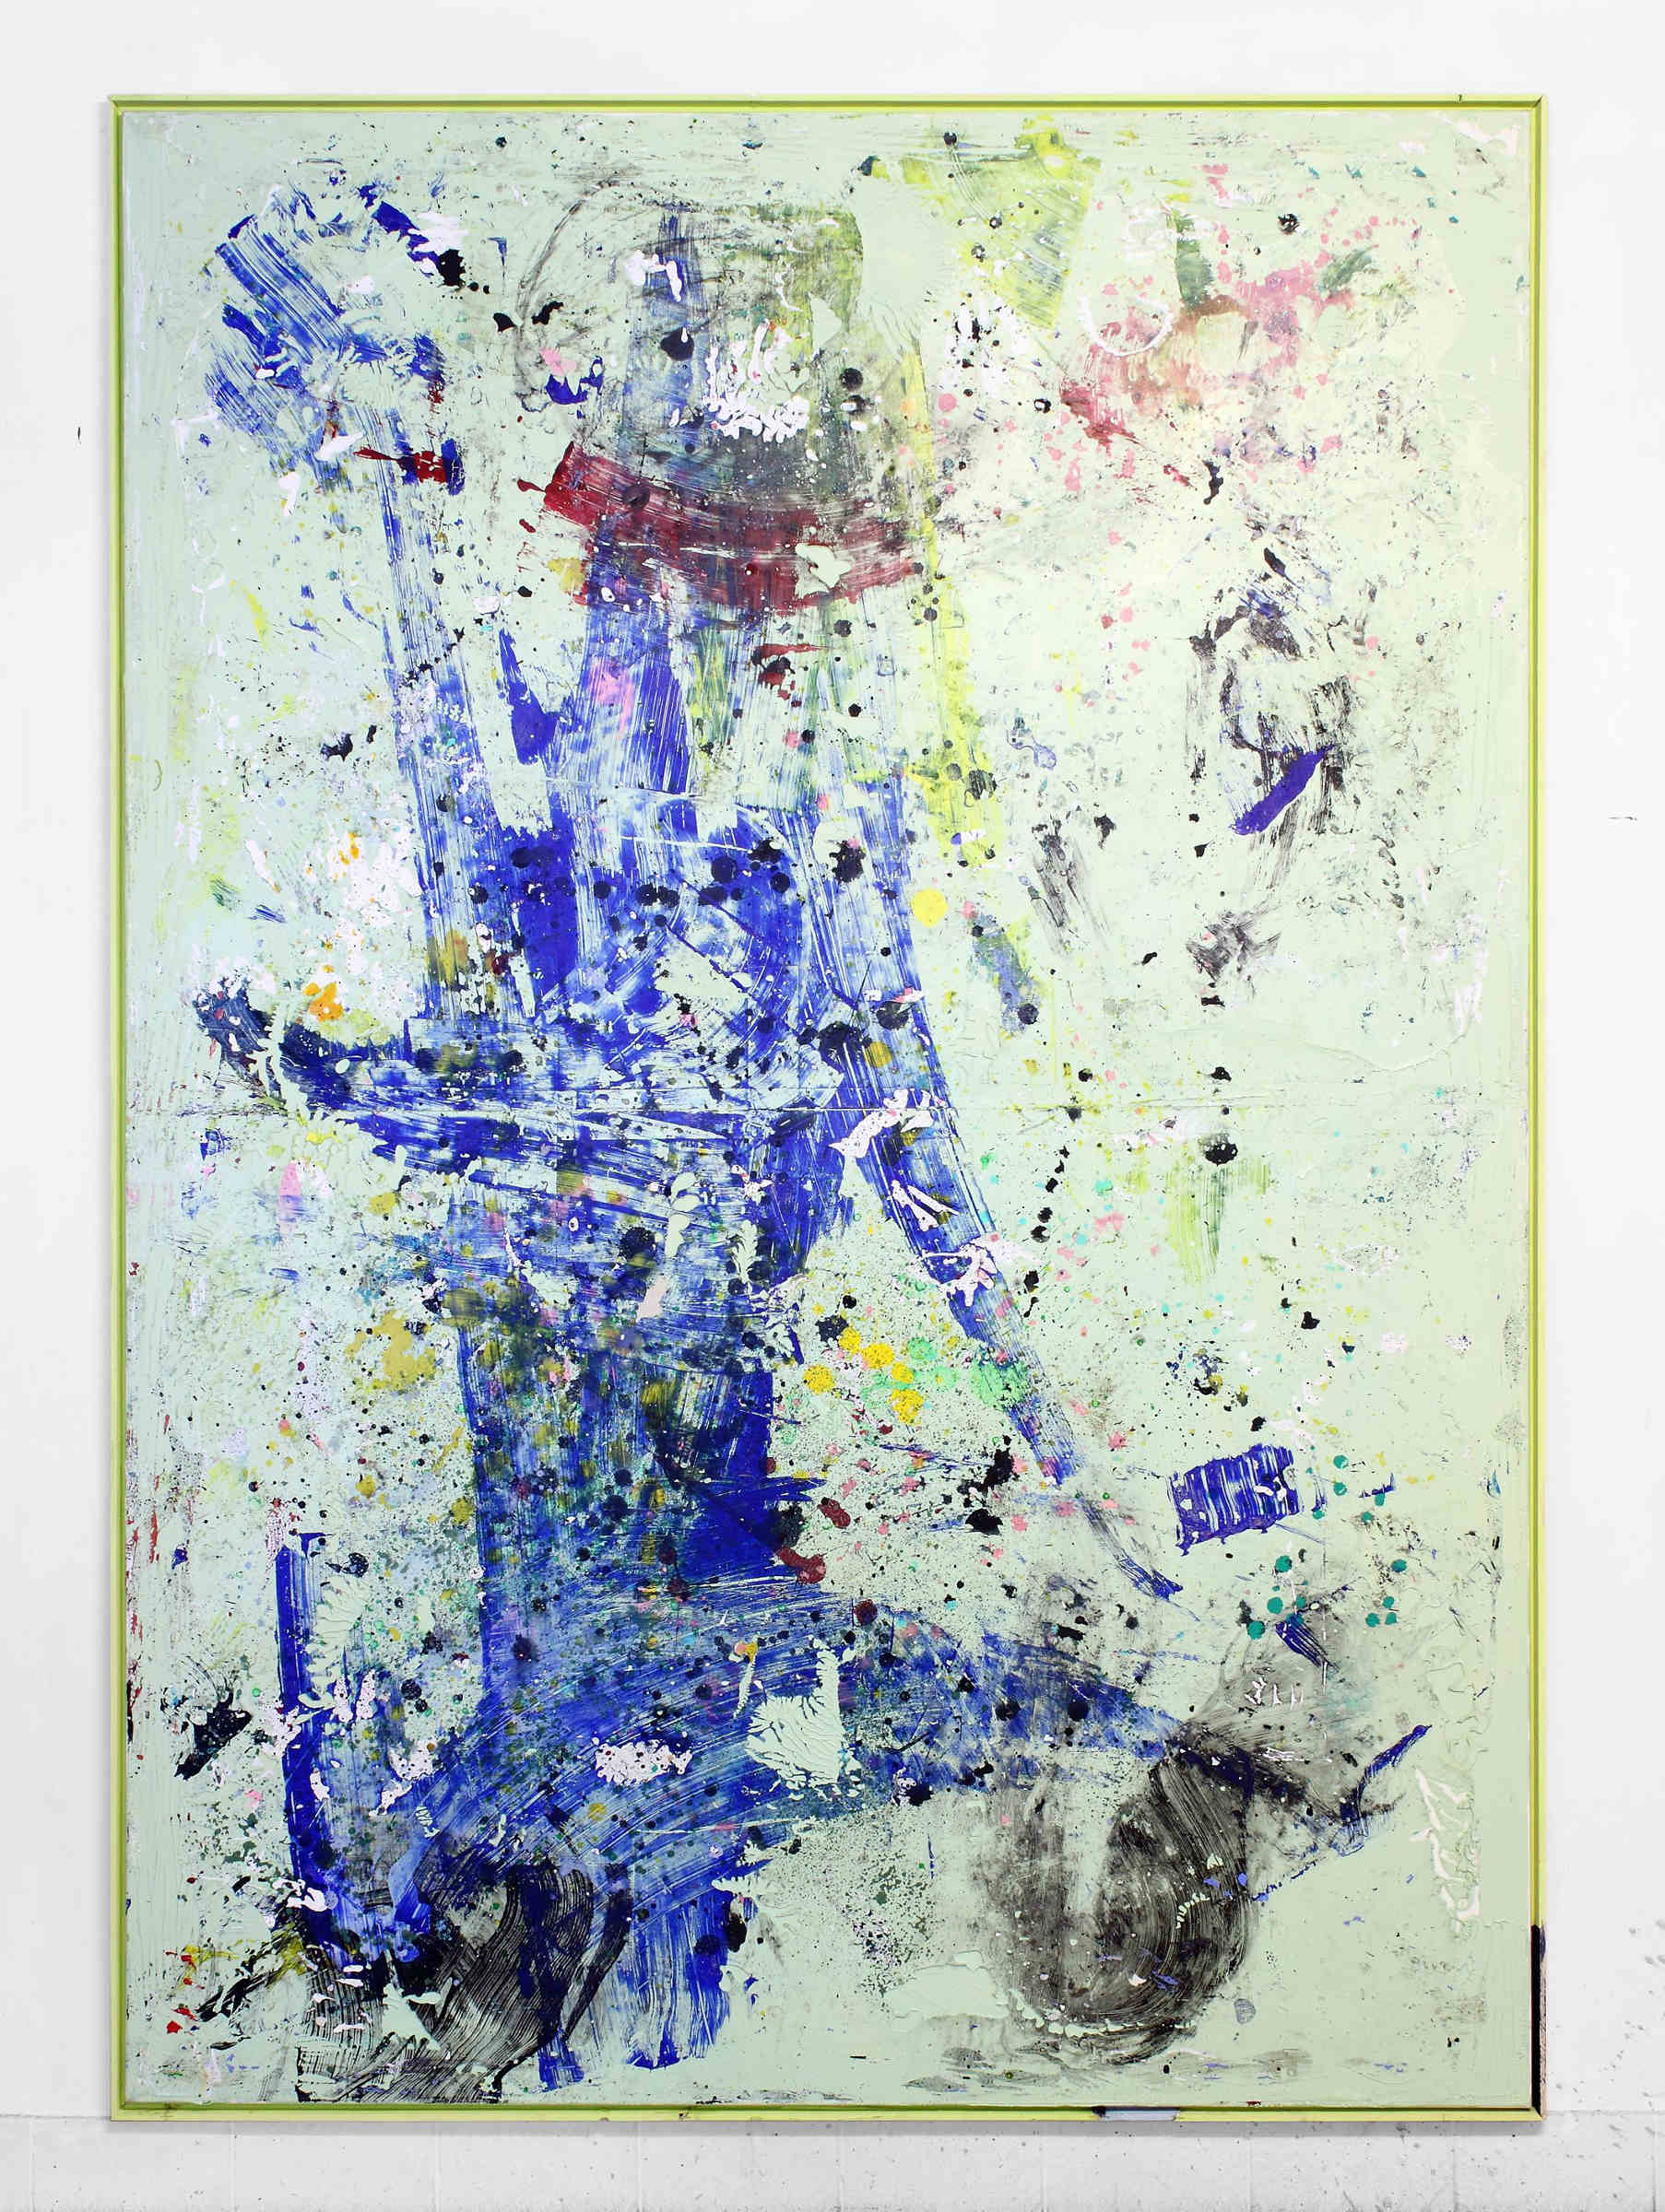 48_tiziano martini, 2016, acrylics, dirt and monothype process on acrylic paint on primer on cotton, artist frame, cm 202x142